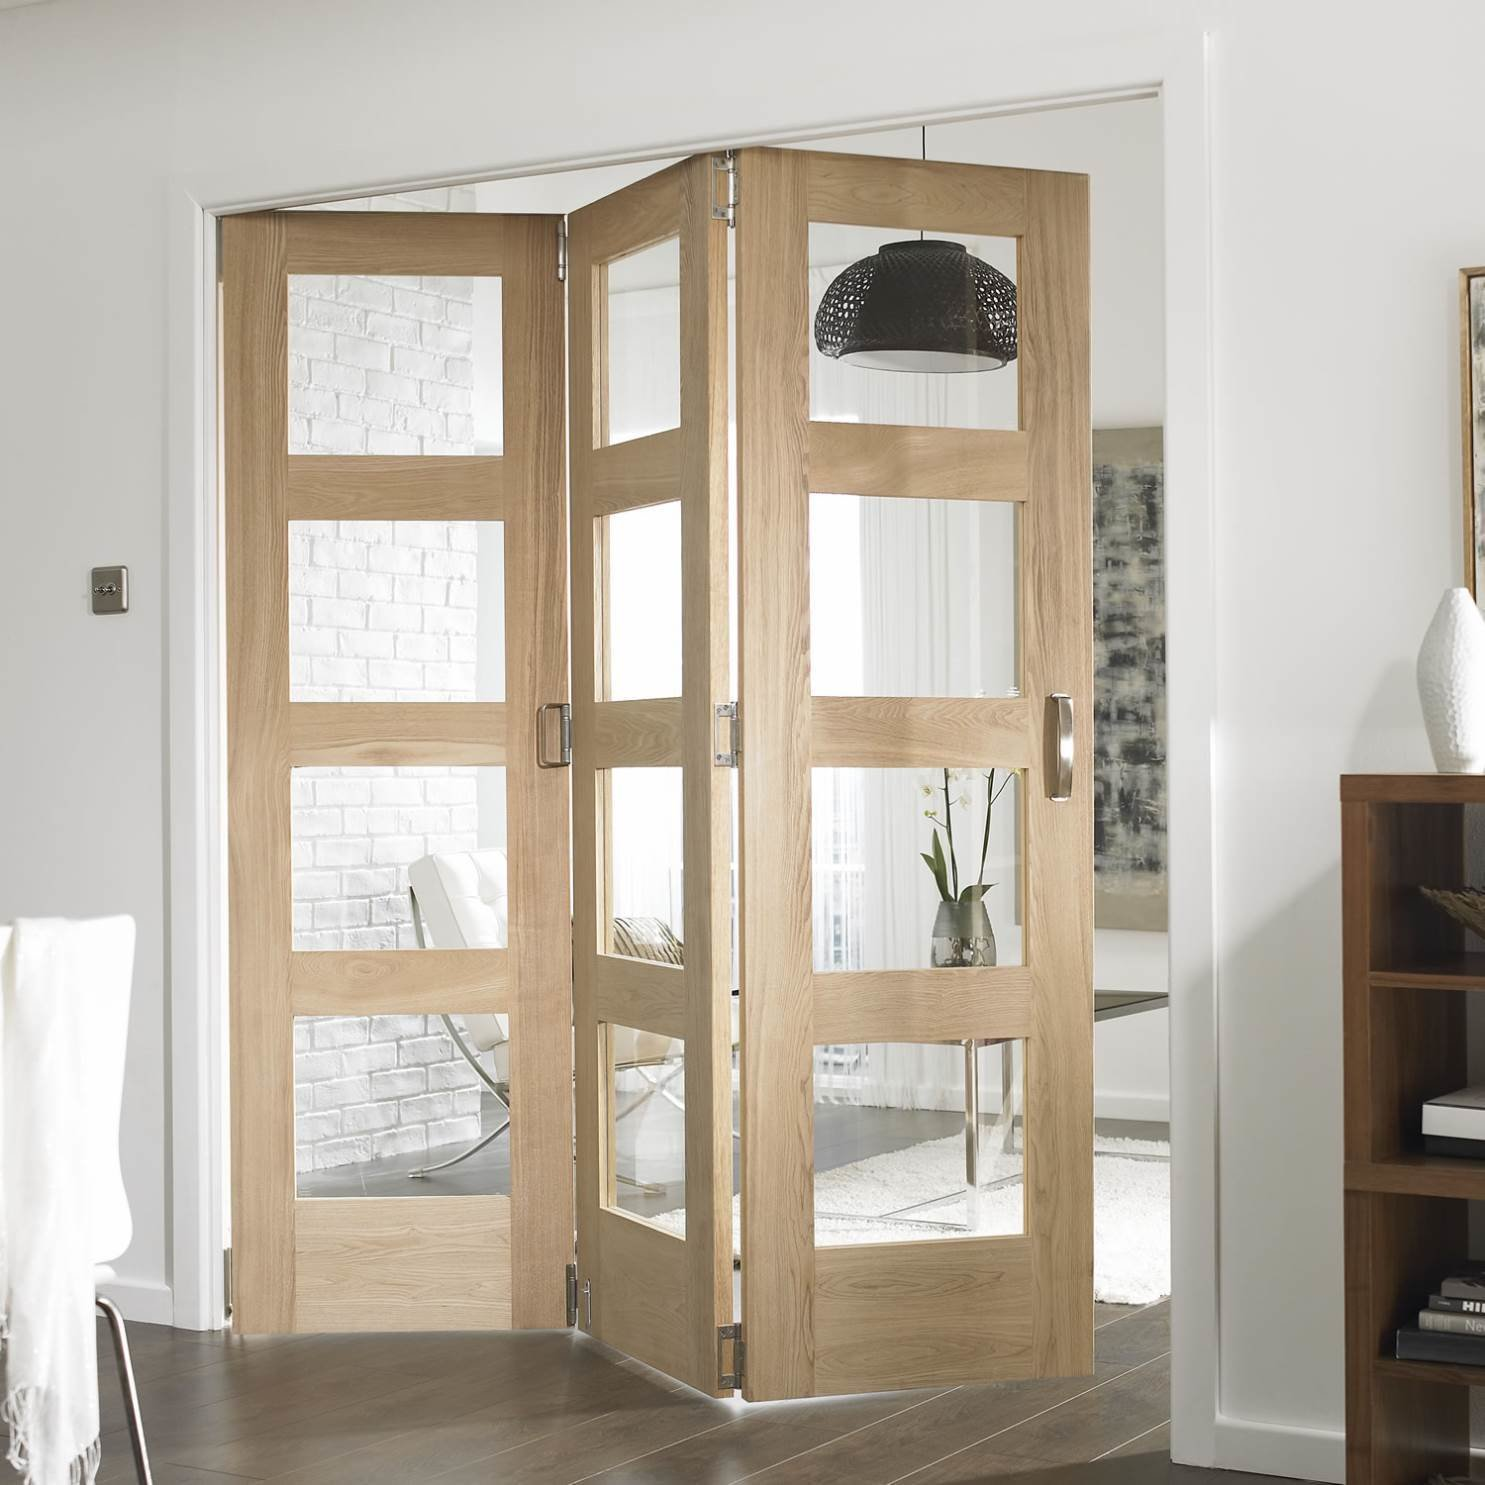 Best Bedroom Doors Home Depot Peytonmeyer Net With Pictures